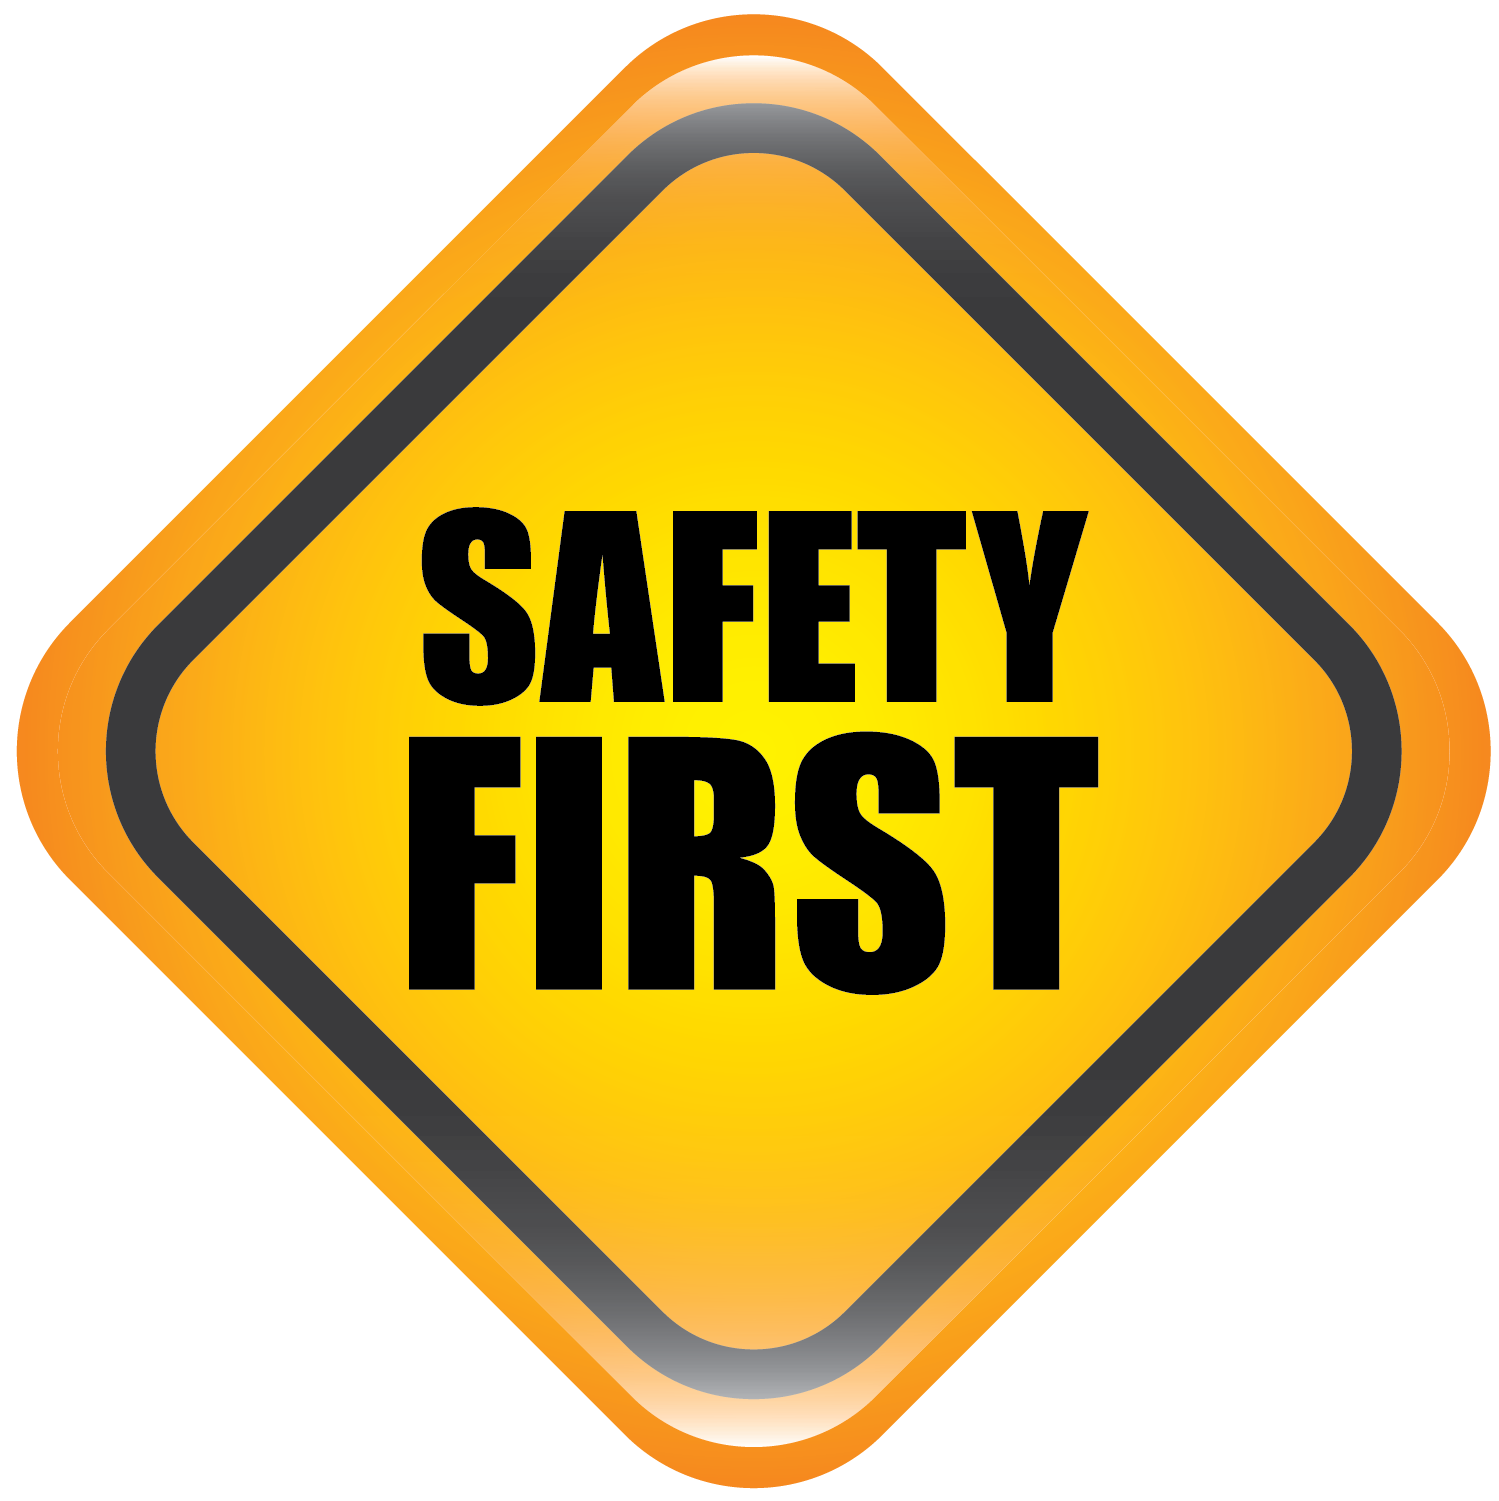 Safety_First-01.png